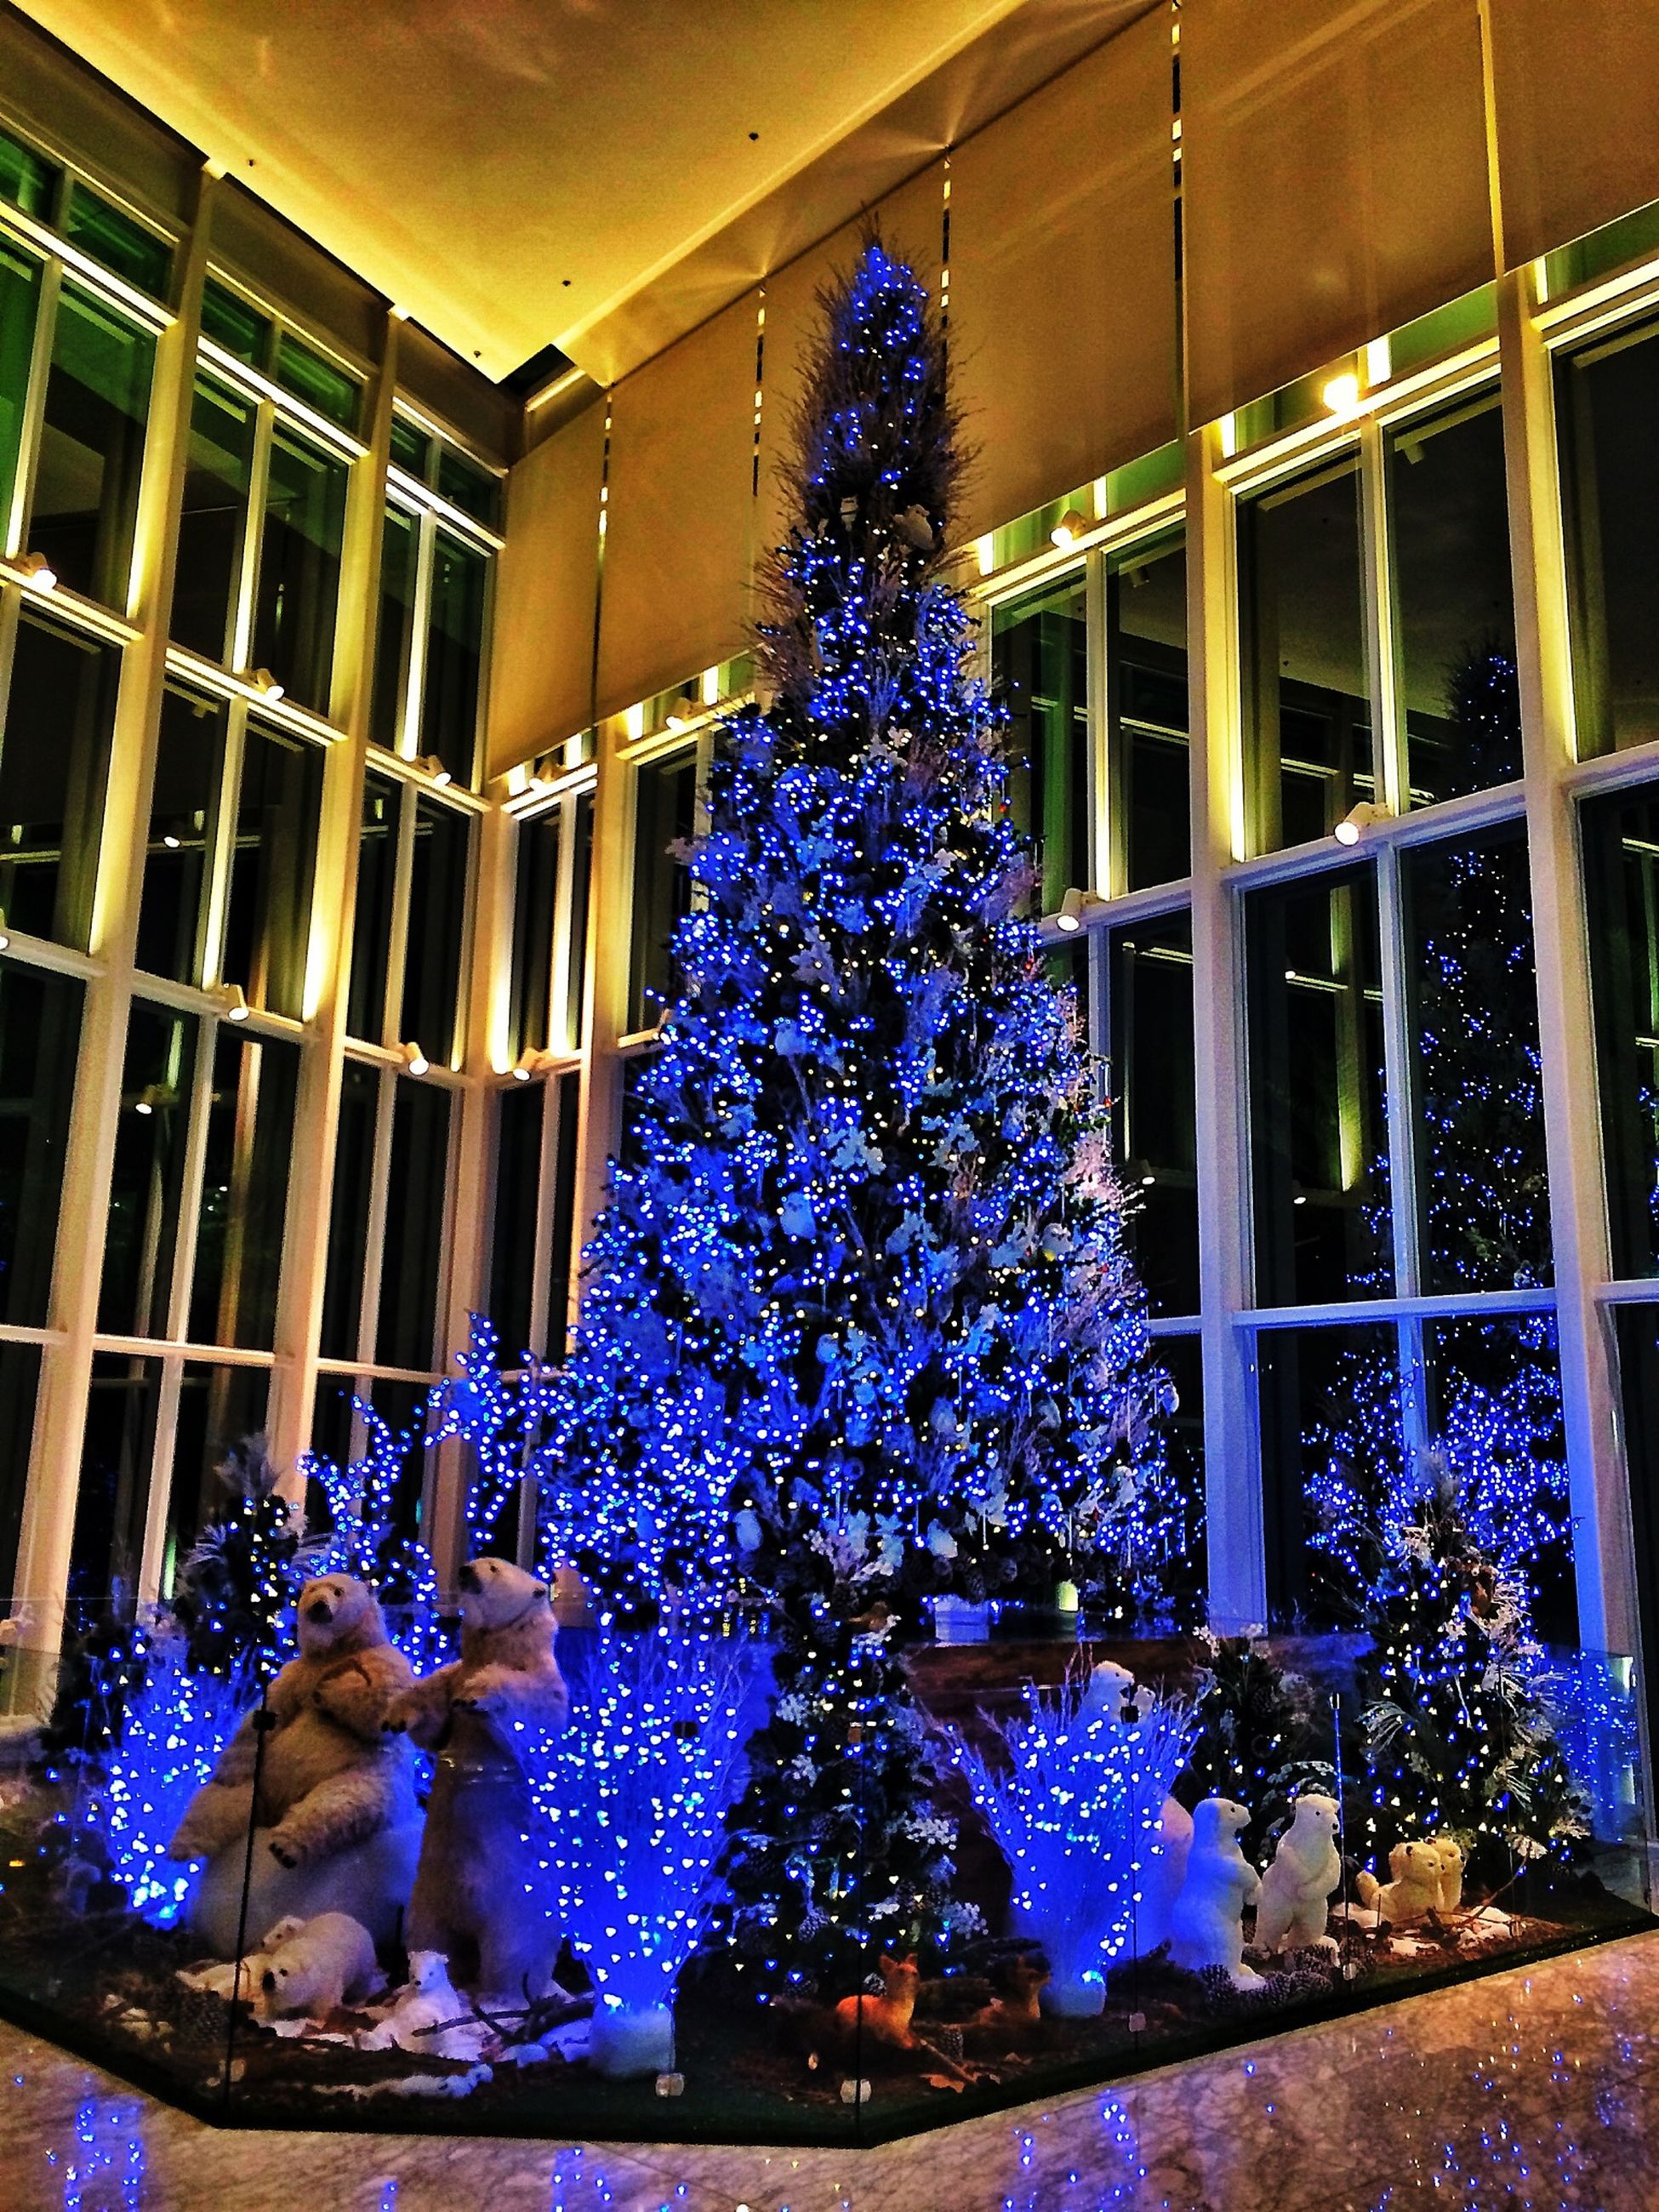 architecture, illuminated, built structure, window, building exterior, decoration, celebration, blue, hanging, multi colored, night, lighting equipment, christmas tree, building, indoors, christmas, low angle view, house, purple, christmas decoration